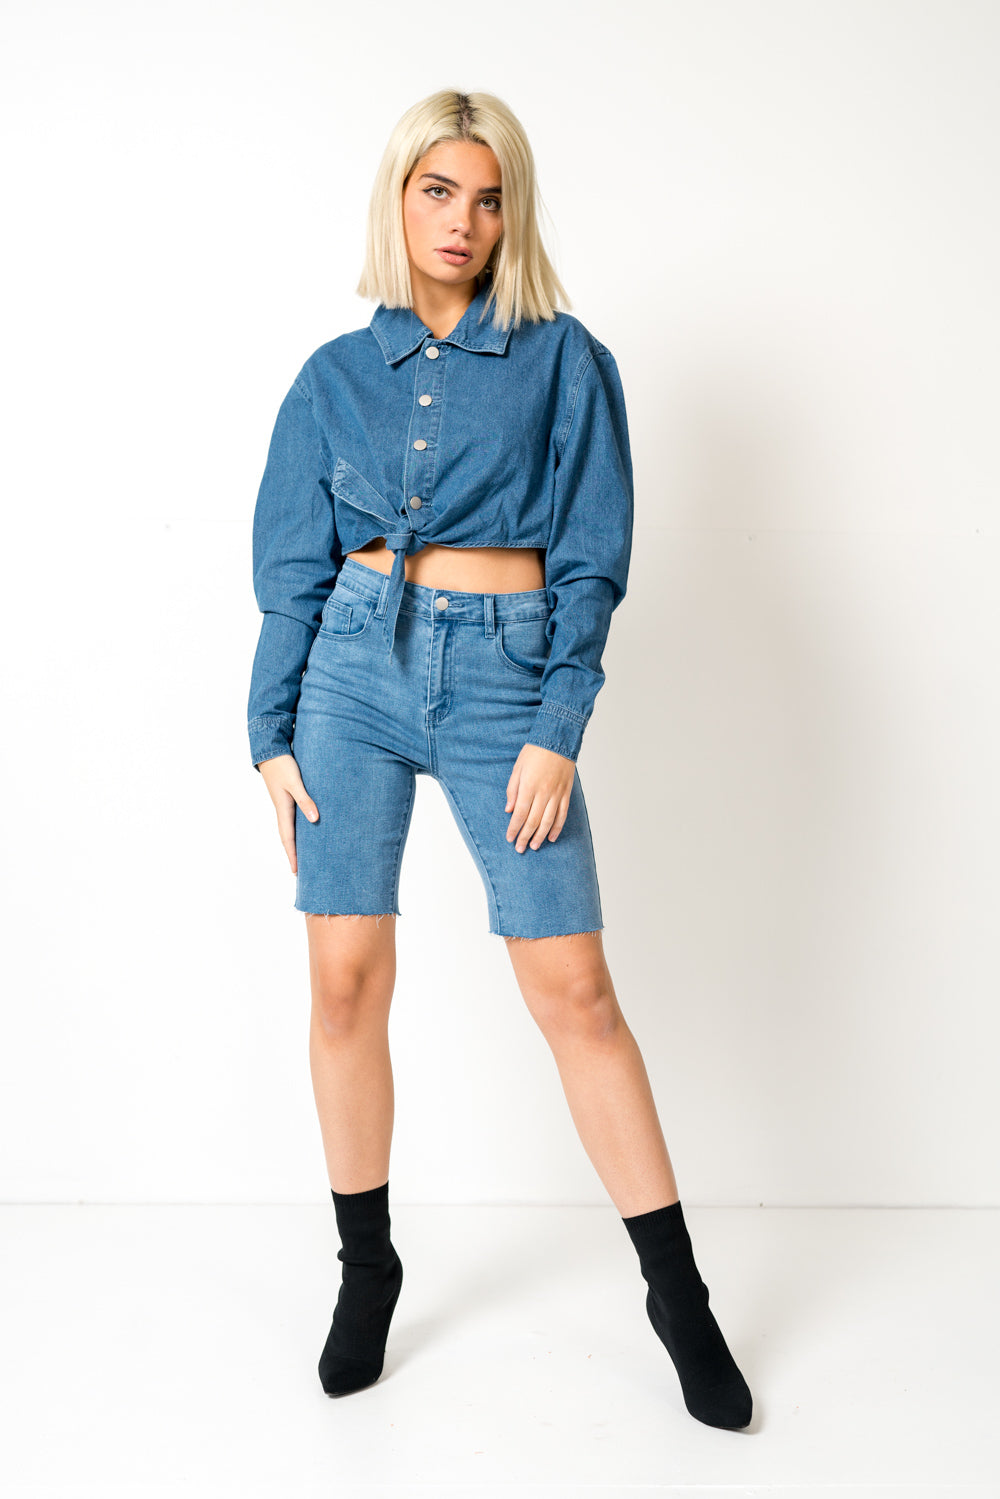 FAE LONDON - DULWICH OVERSIZED CROPPED DENIM SHIRT